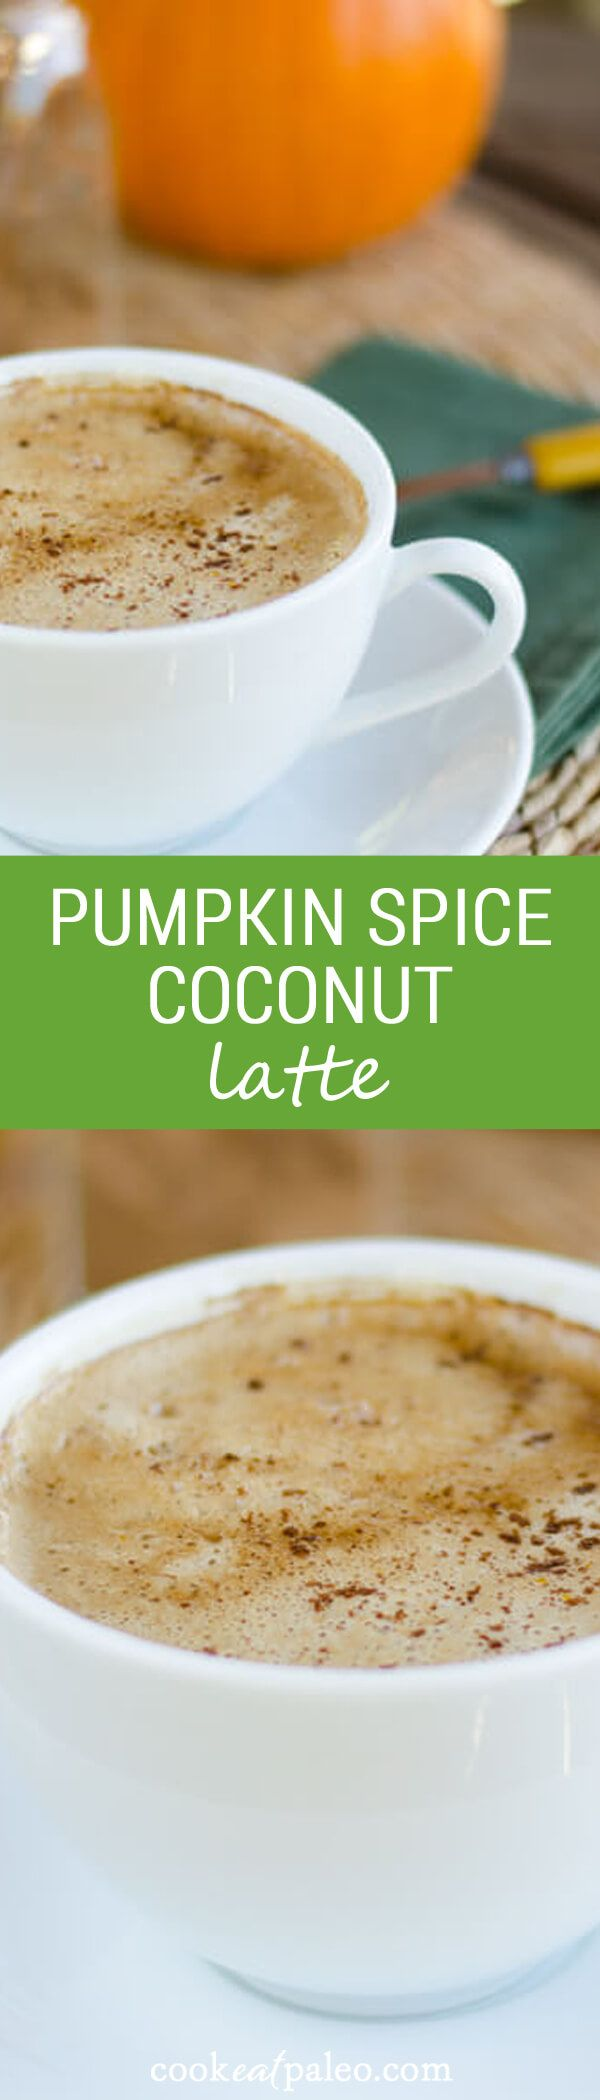 This pumpkin spice coconut latte recipe includes all the flavors of fall — pumpkin, honey, and spice. Coconut milk makes it rich, creamy and dairy-free. | Cook Eat Paleo (Whole 30 Recipes Pumpkin)